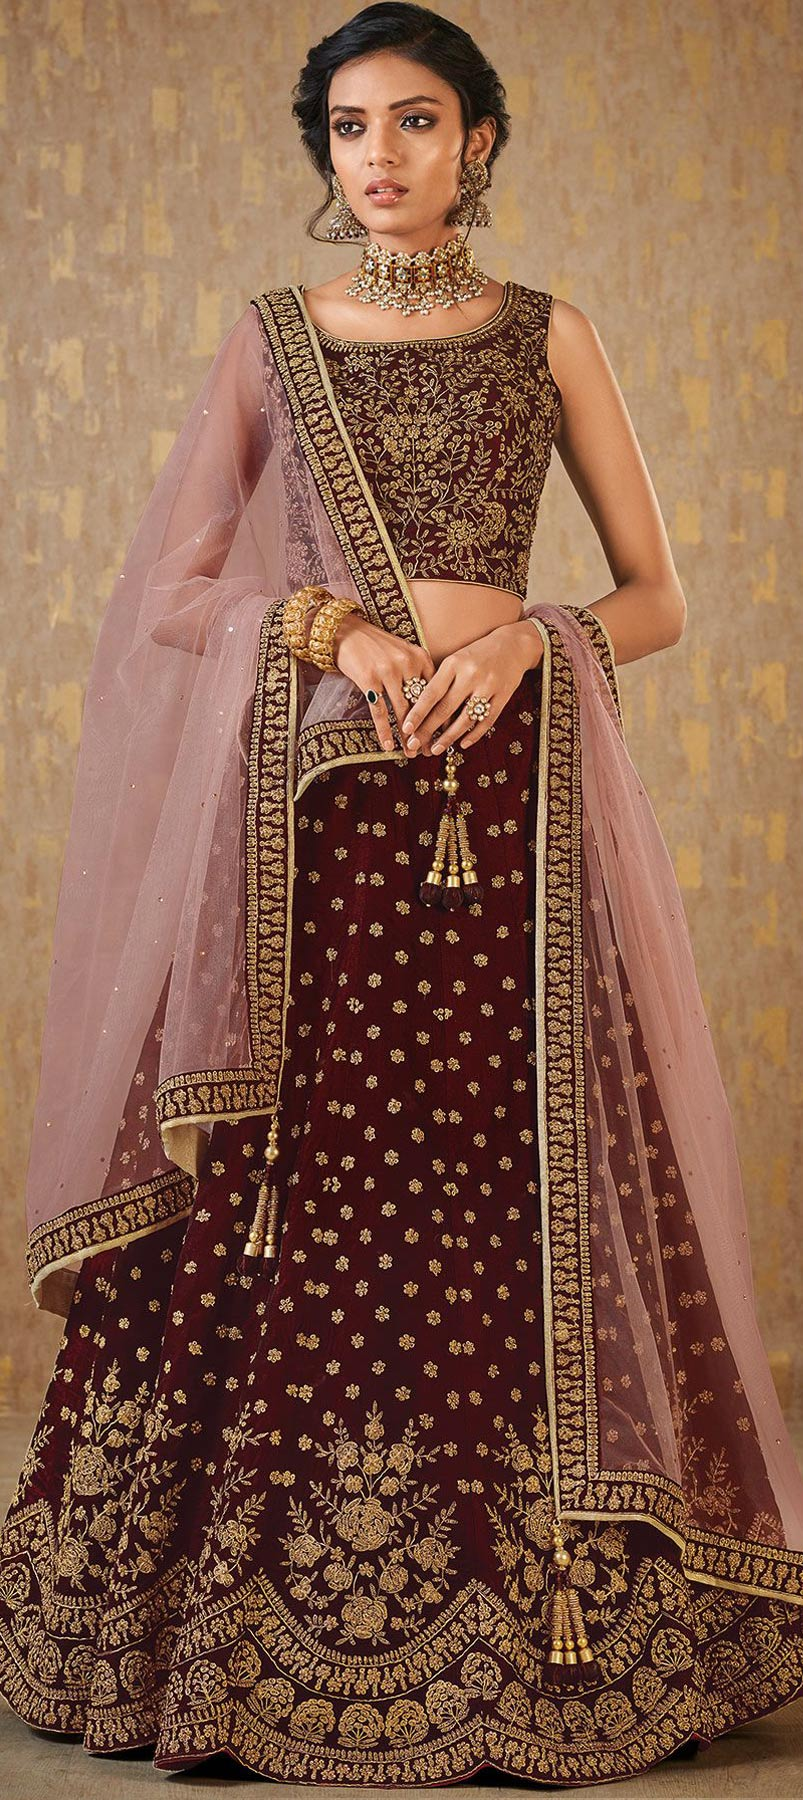 Mulberry Silk Reception Lehenga in Red and Maroon with Resham work